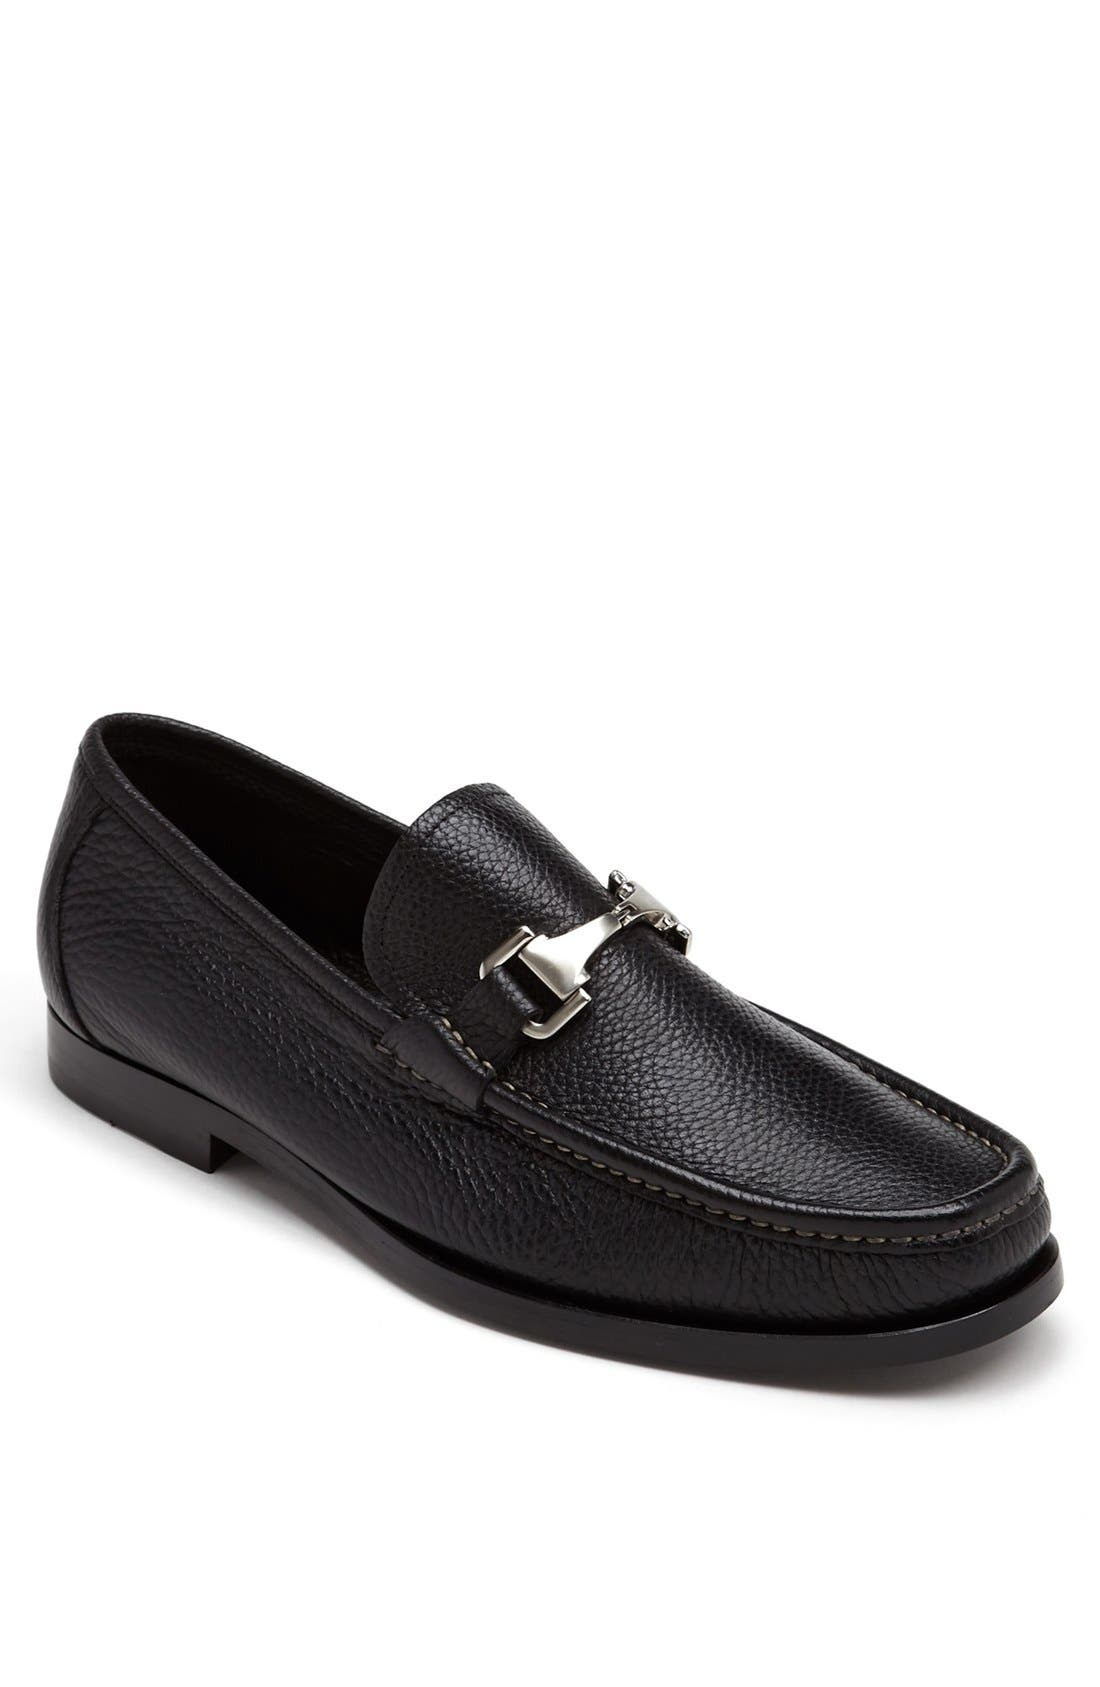 ALLEN EDMONDS 'Firenze' Bit Loafer